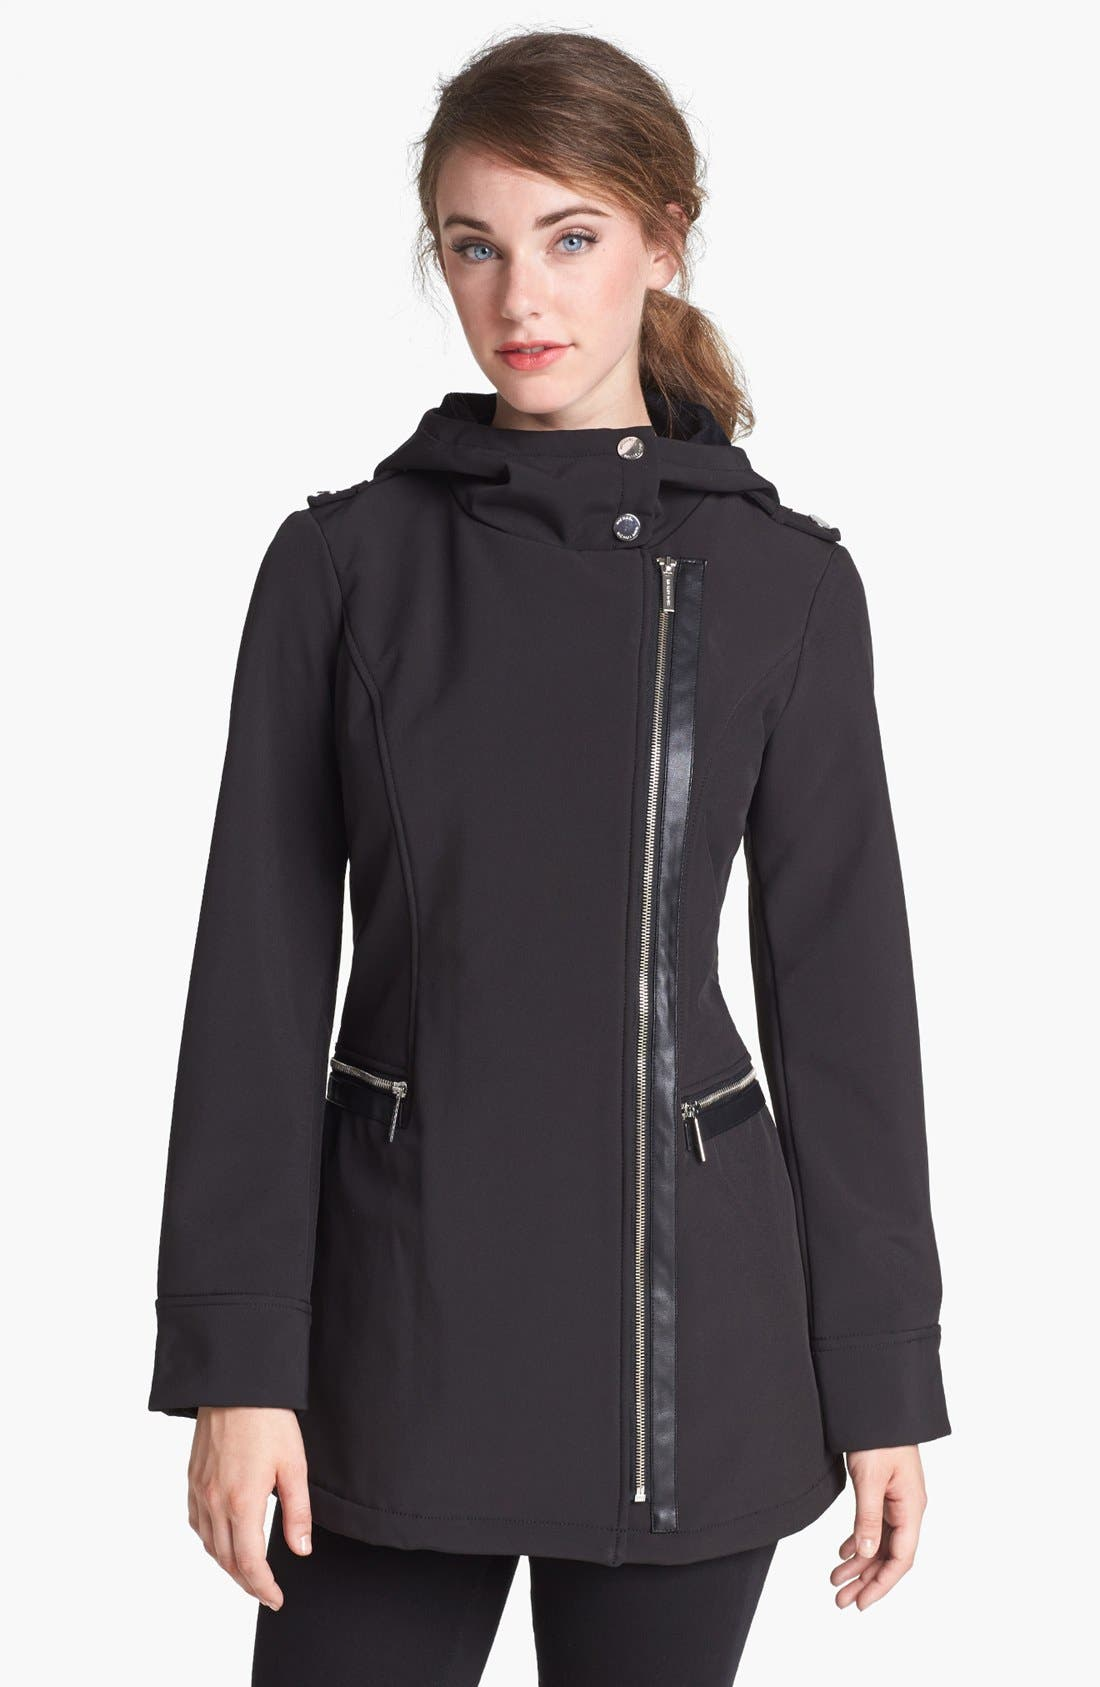 Alternate Image 1 Selected - MICHAEL Michael Kors Faux Leather Trim Soft Shell Jacket (Petite)